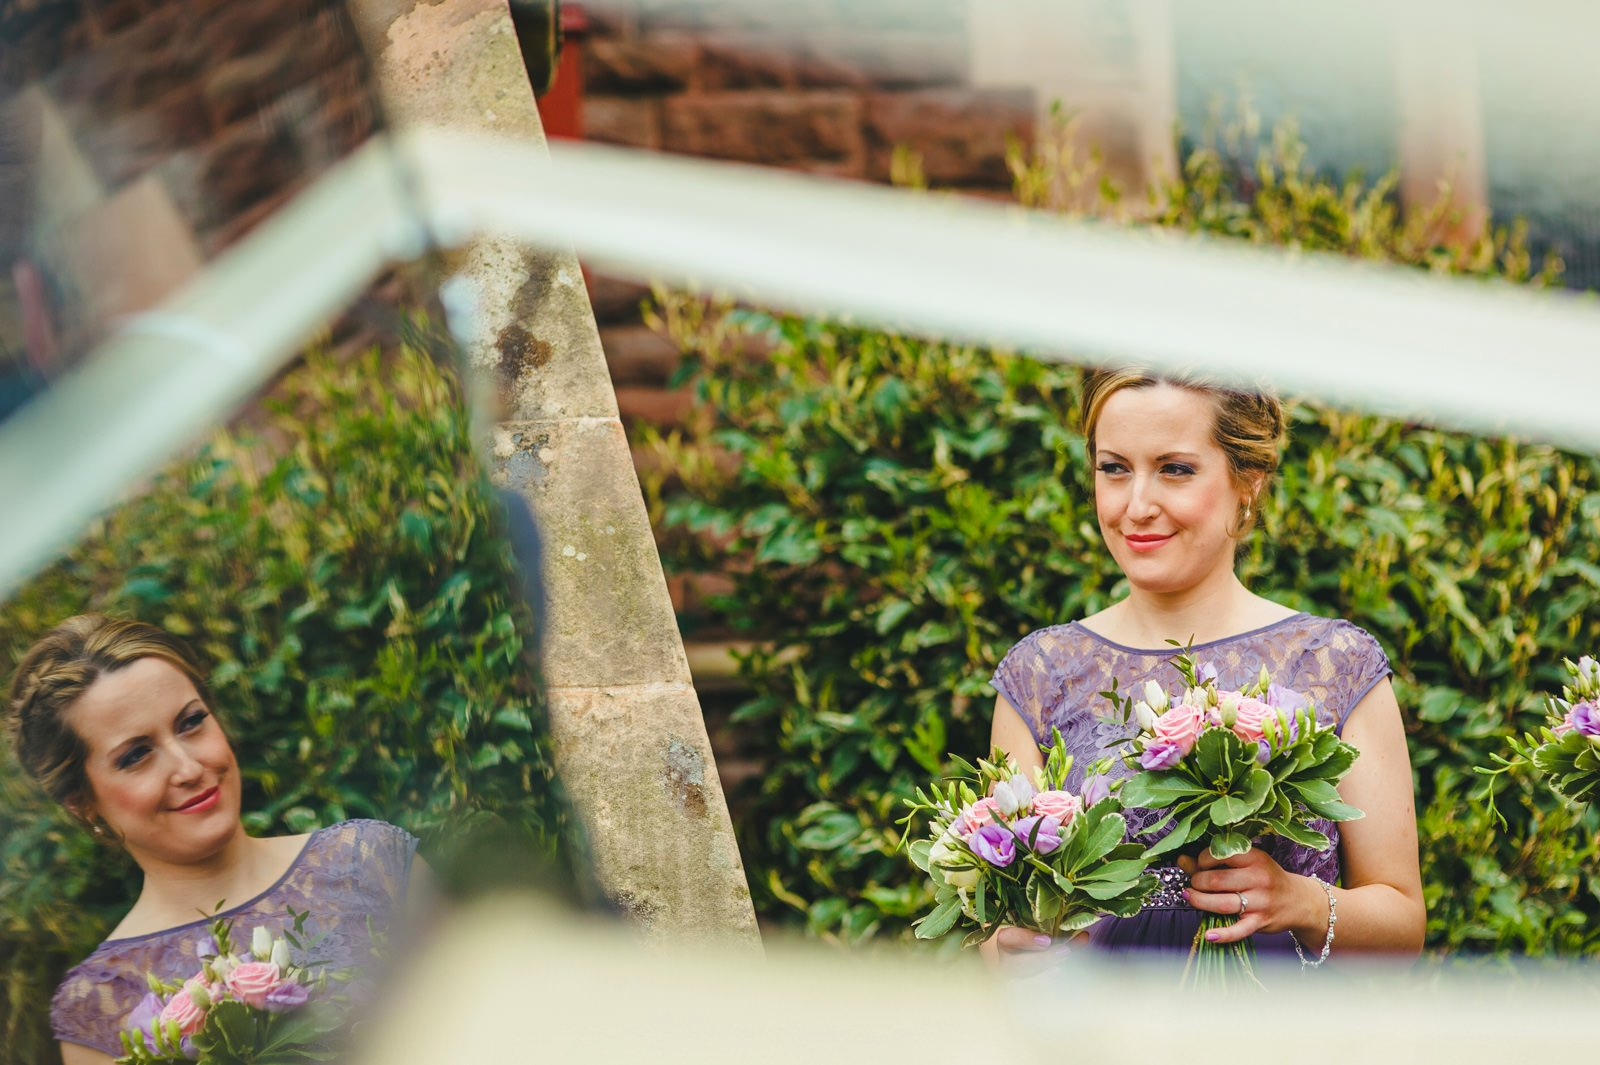 millers of netley wedding 21 - Millers Of Netley wedding, Dorrington, Shrewsbury | Emma + Ben